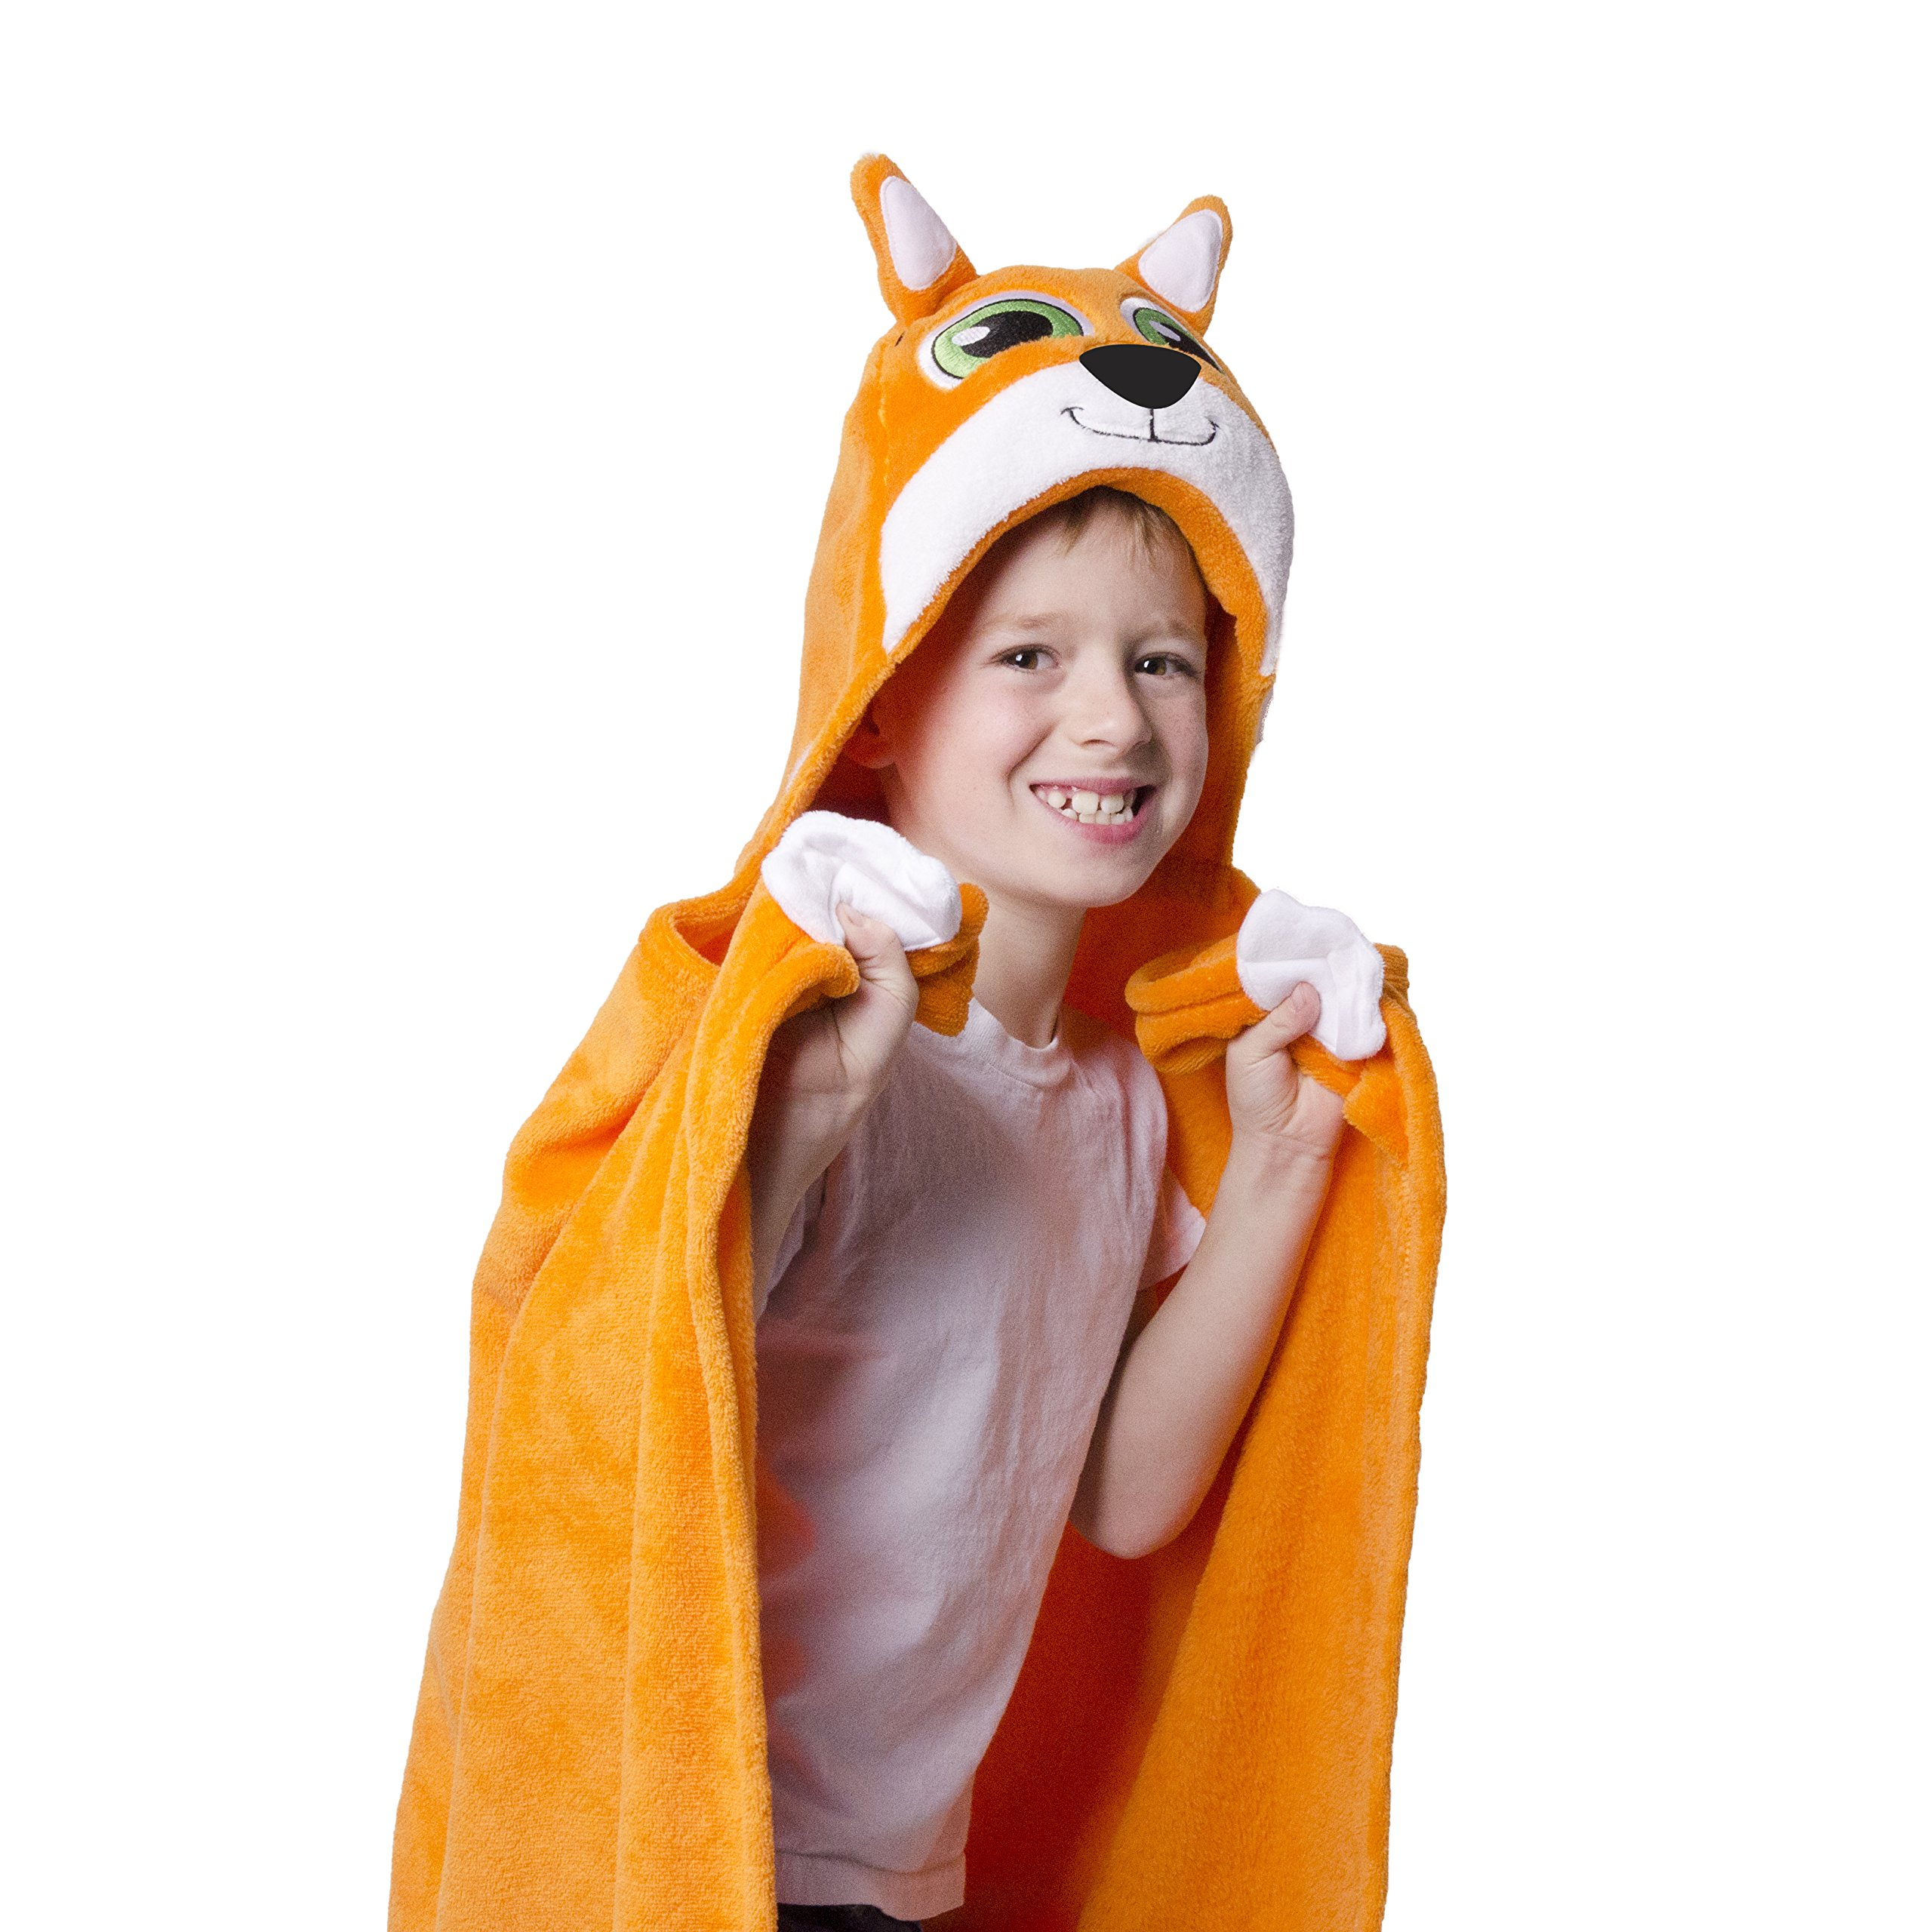 CDM product Comfy Critters Stuffed Animal Blanket Kids Huggable Pillow and Blanket Perfect for Pretend Play, Travel, Nap time. (Fox) small thumbnail image